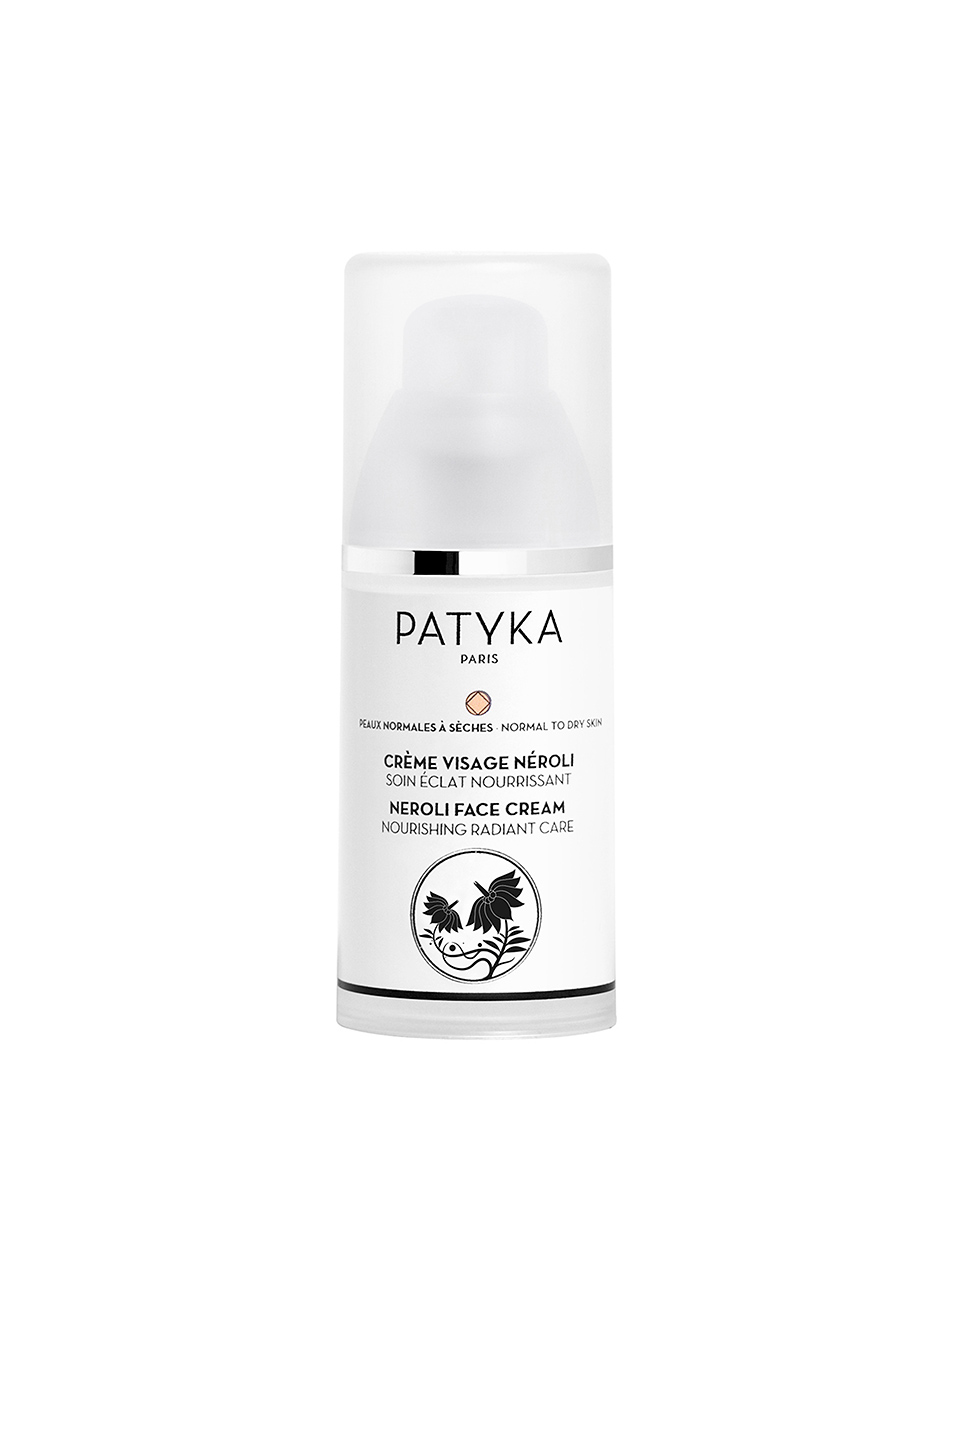 Patyka Neroli Face Cream in Neroli